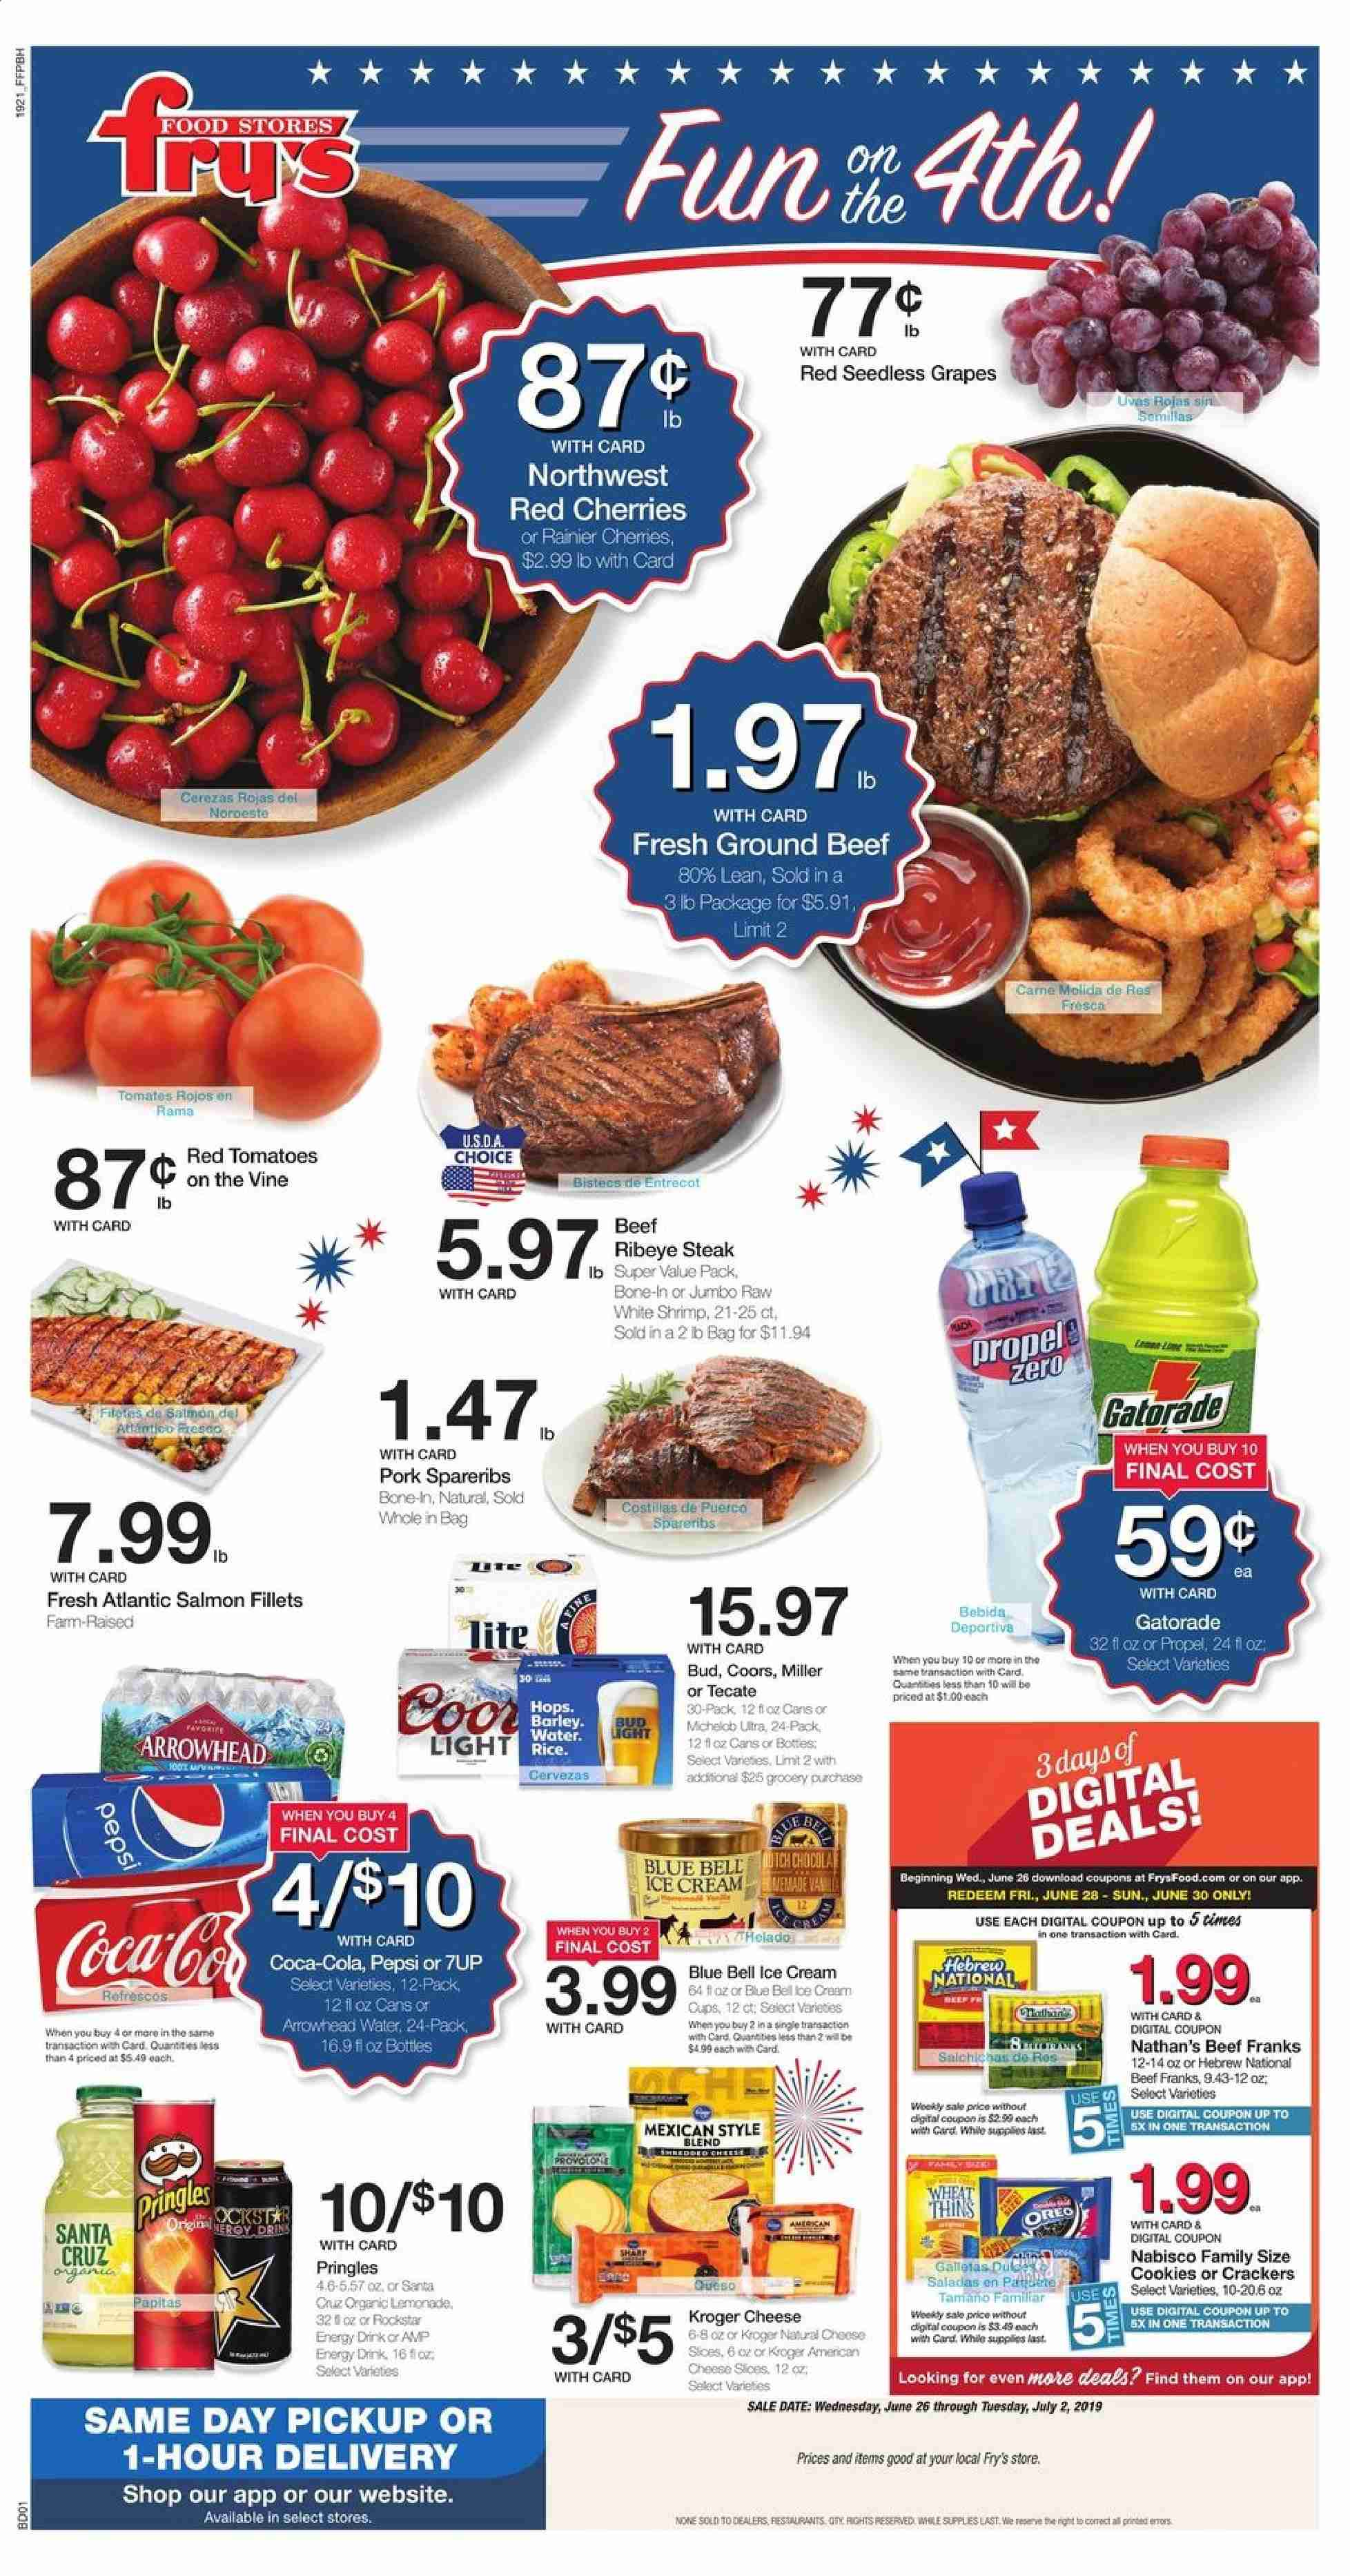 Fry's Flyer  - 06.26.2019 - 07.02.2019. Page 1.